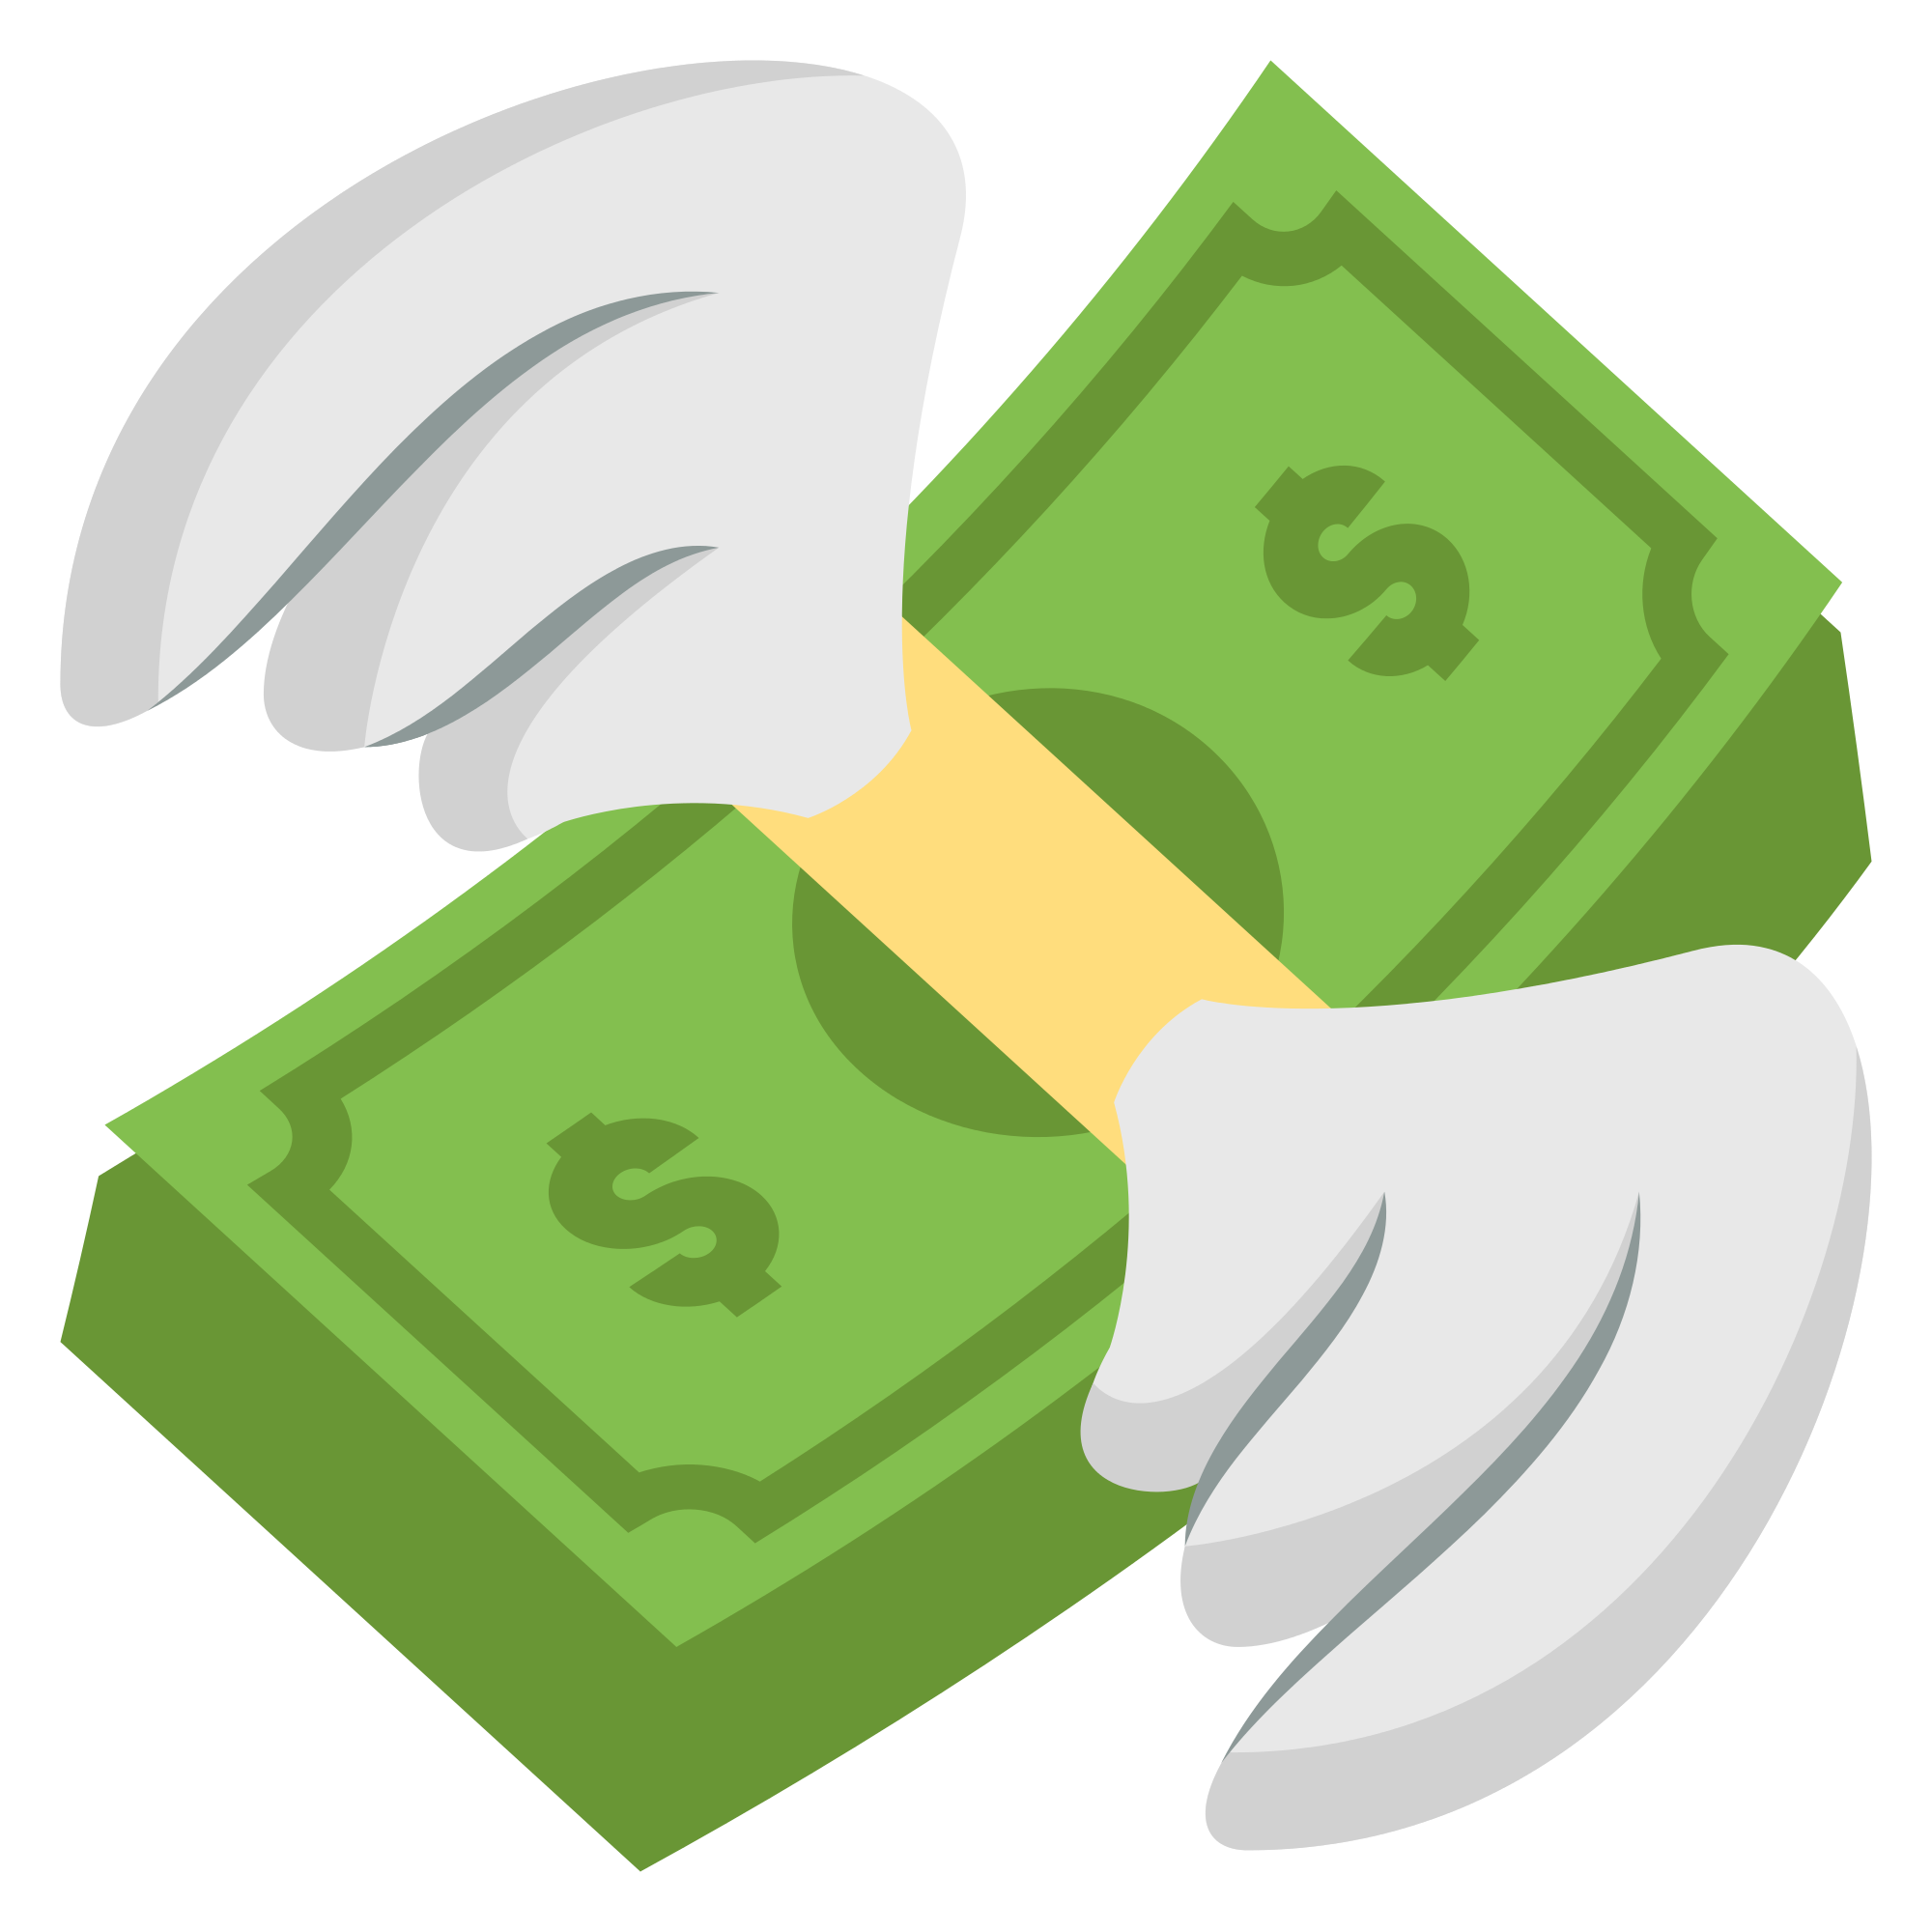 emojis for playlists. Money emoji png